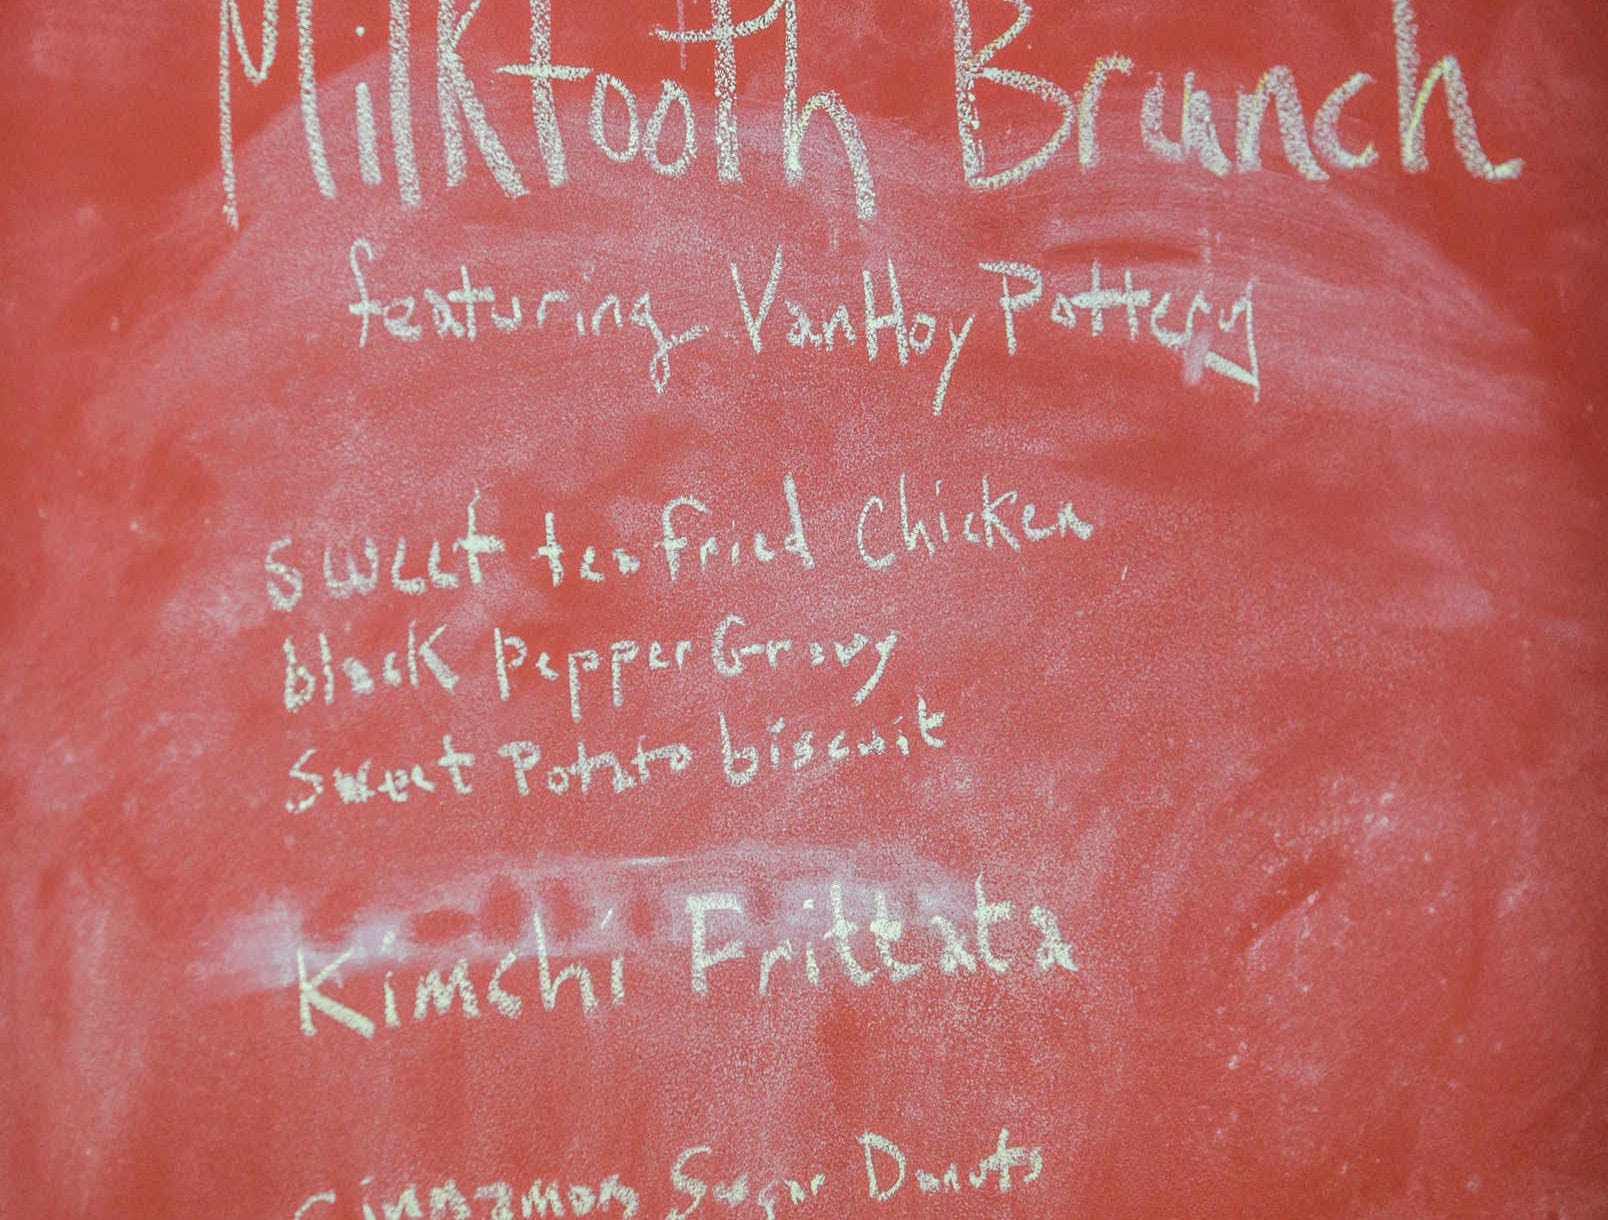 Sunday January 19th, 2014, Milktooth brunch menu. Milktooth owners Jonathan and Ashley  Brooks, hosted a menu preview brunch at Recess, wheree Jonathan is a chef de cuisine. The restaurant which will be located in Fountain Square will specialize in brunch.